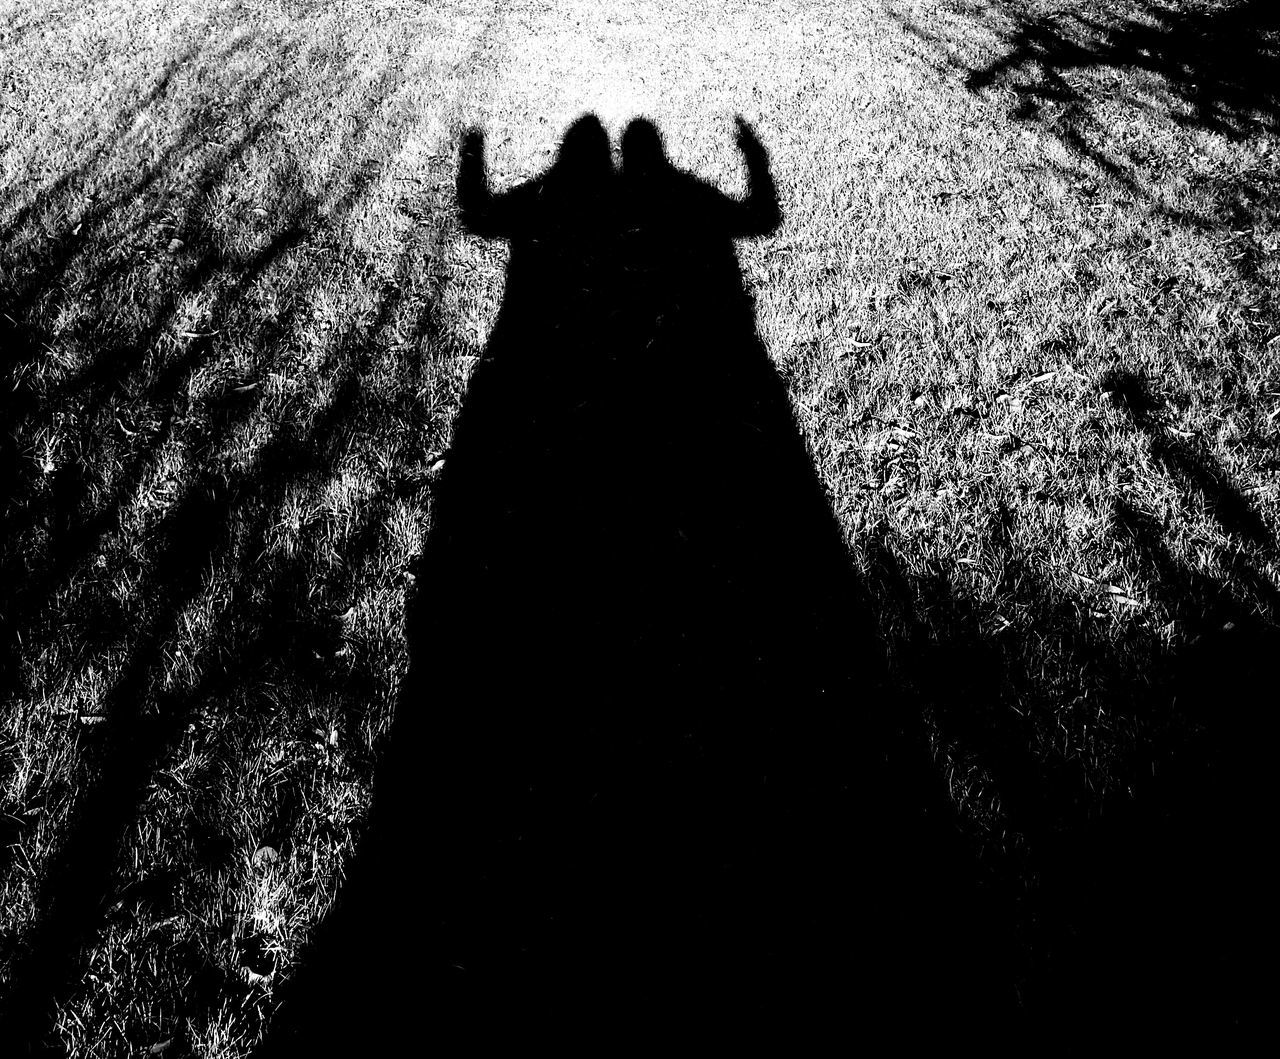 shadow, focus on shadow, silhouette, real people, outdoors, one person, sunlight, day, standing, animal themes, nature, domestic animals, mammal, lifestyles, people